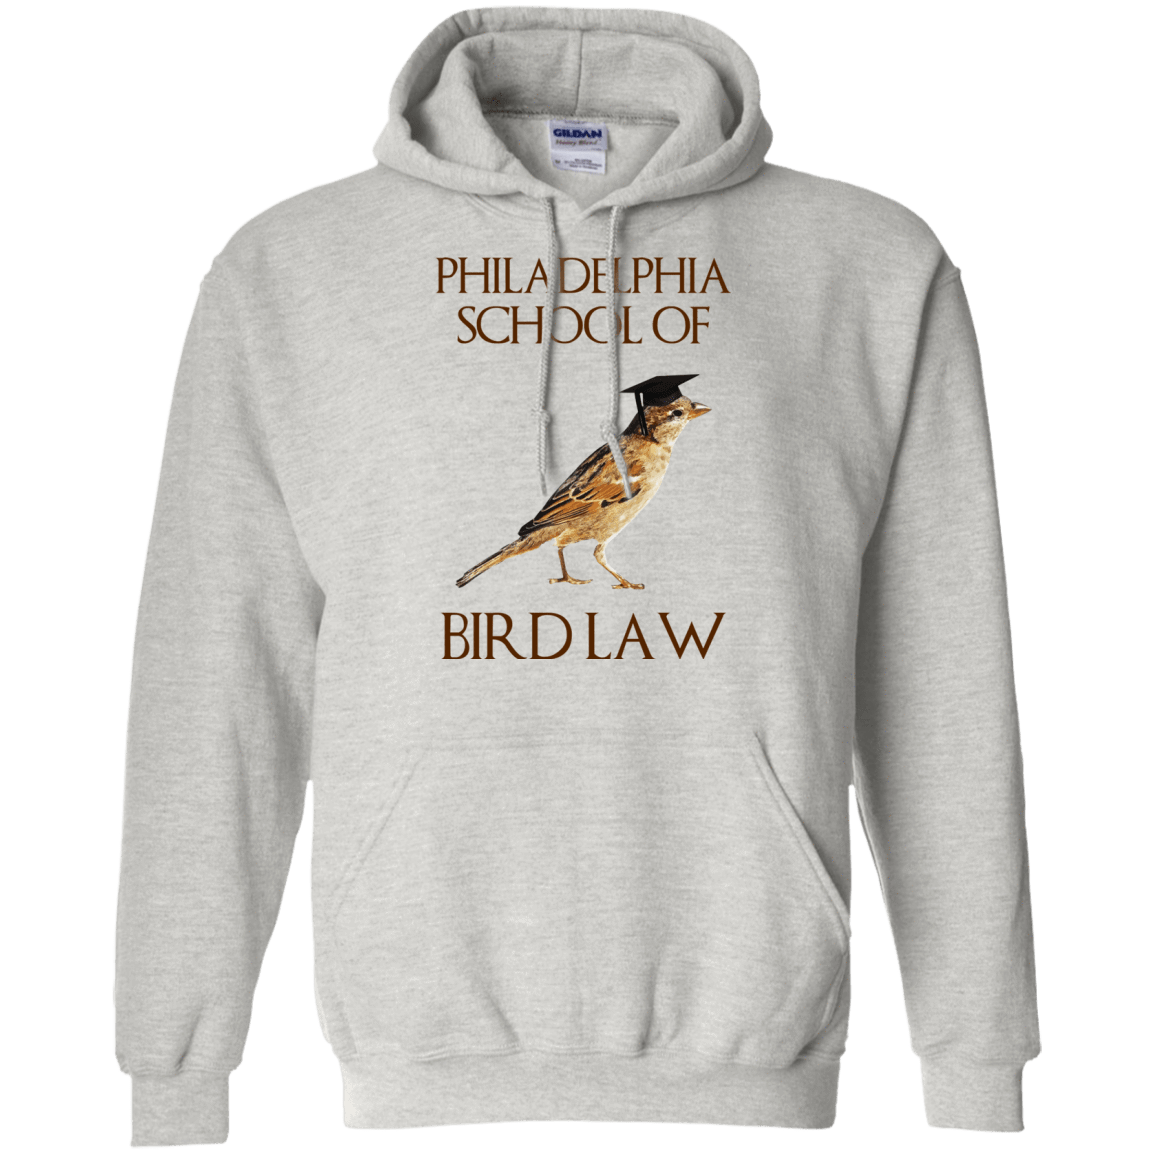 Philadelphia School of Bird Law 541-4748-73057595-23071 - Tee Ript